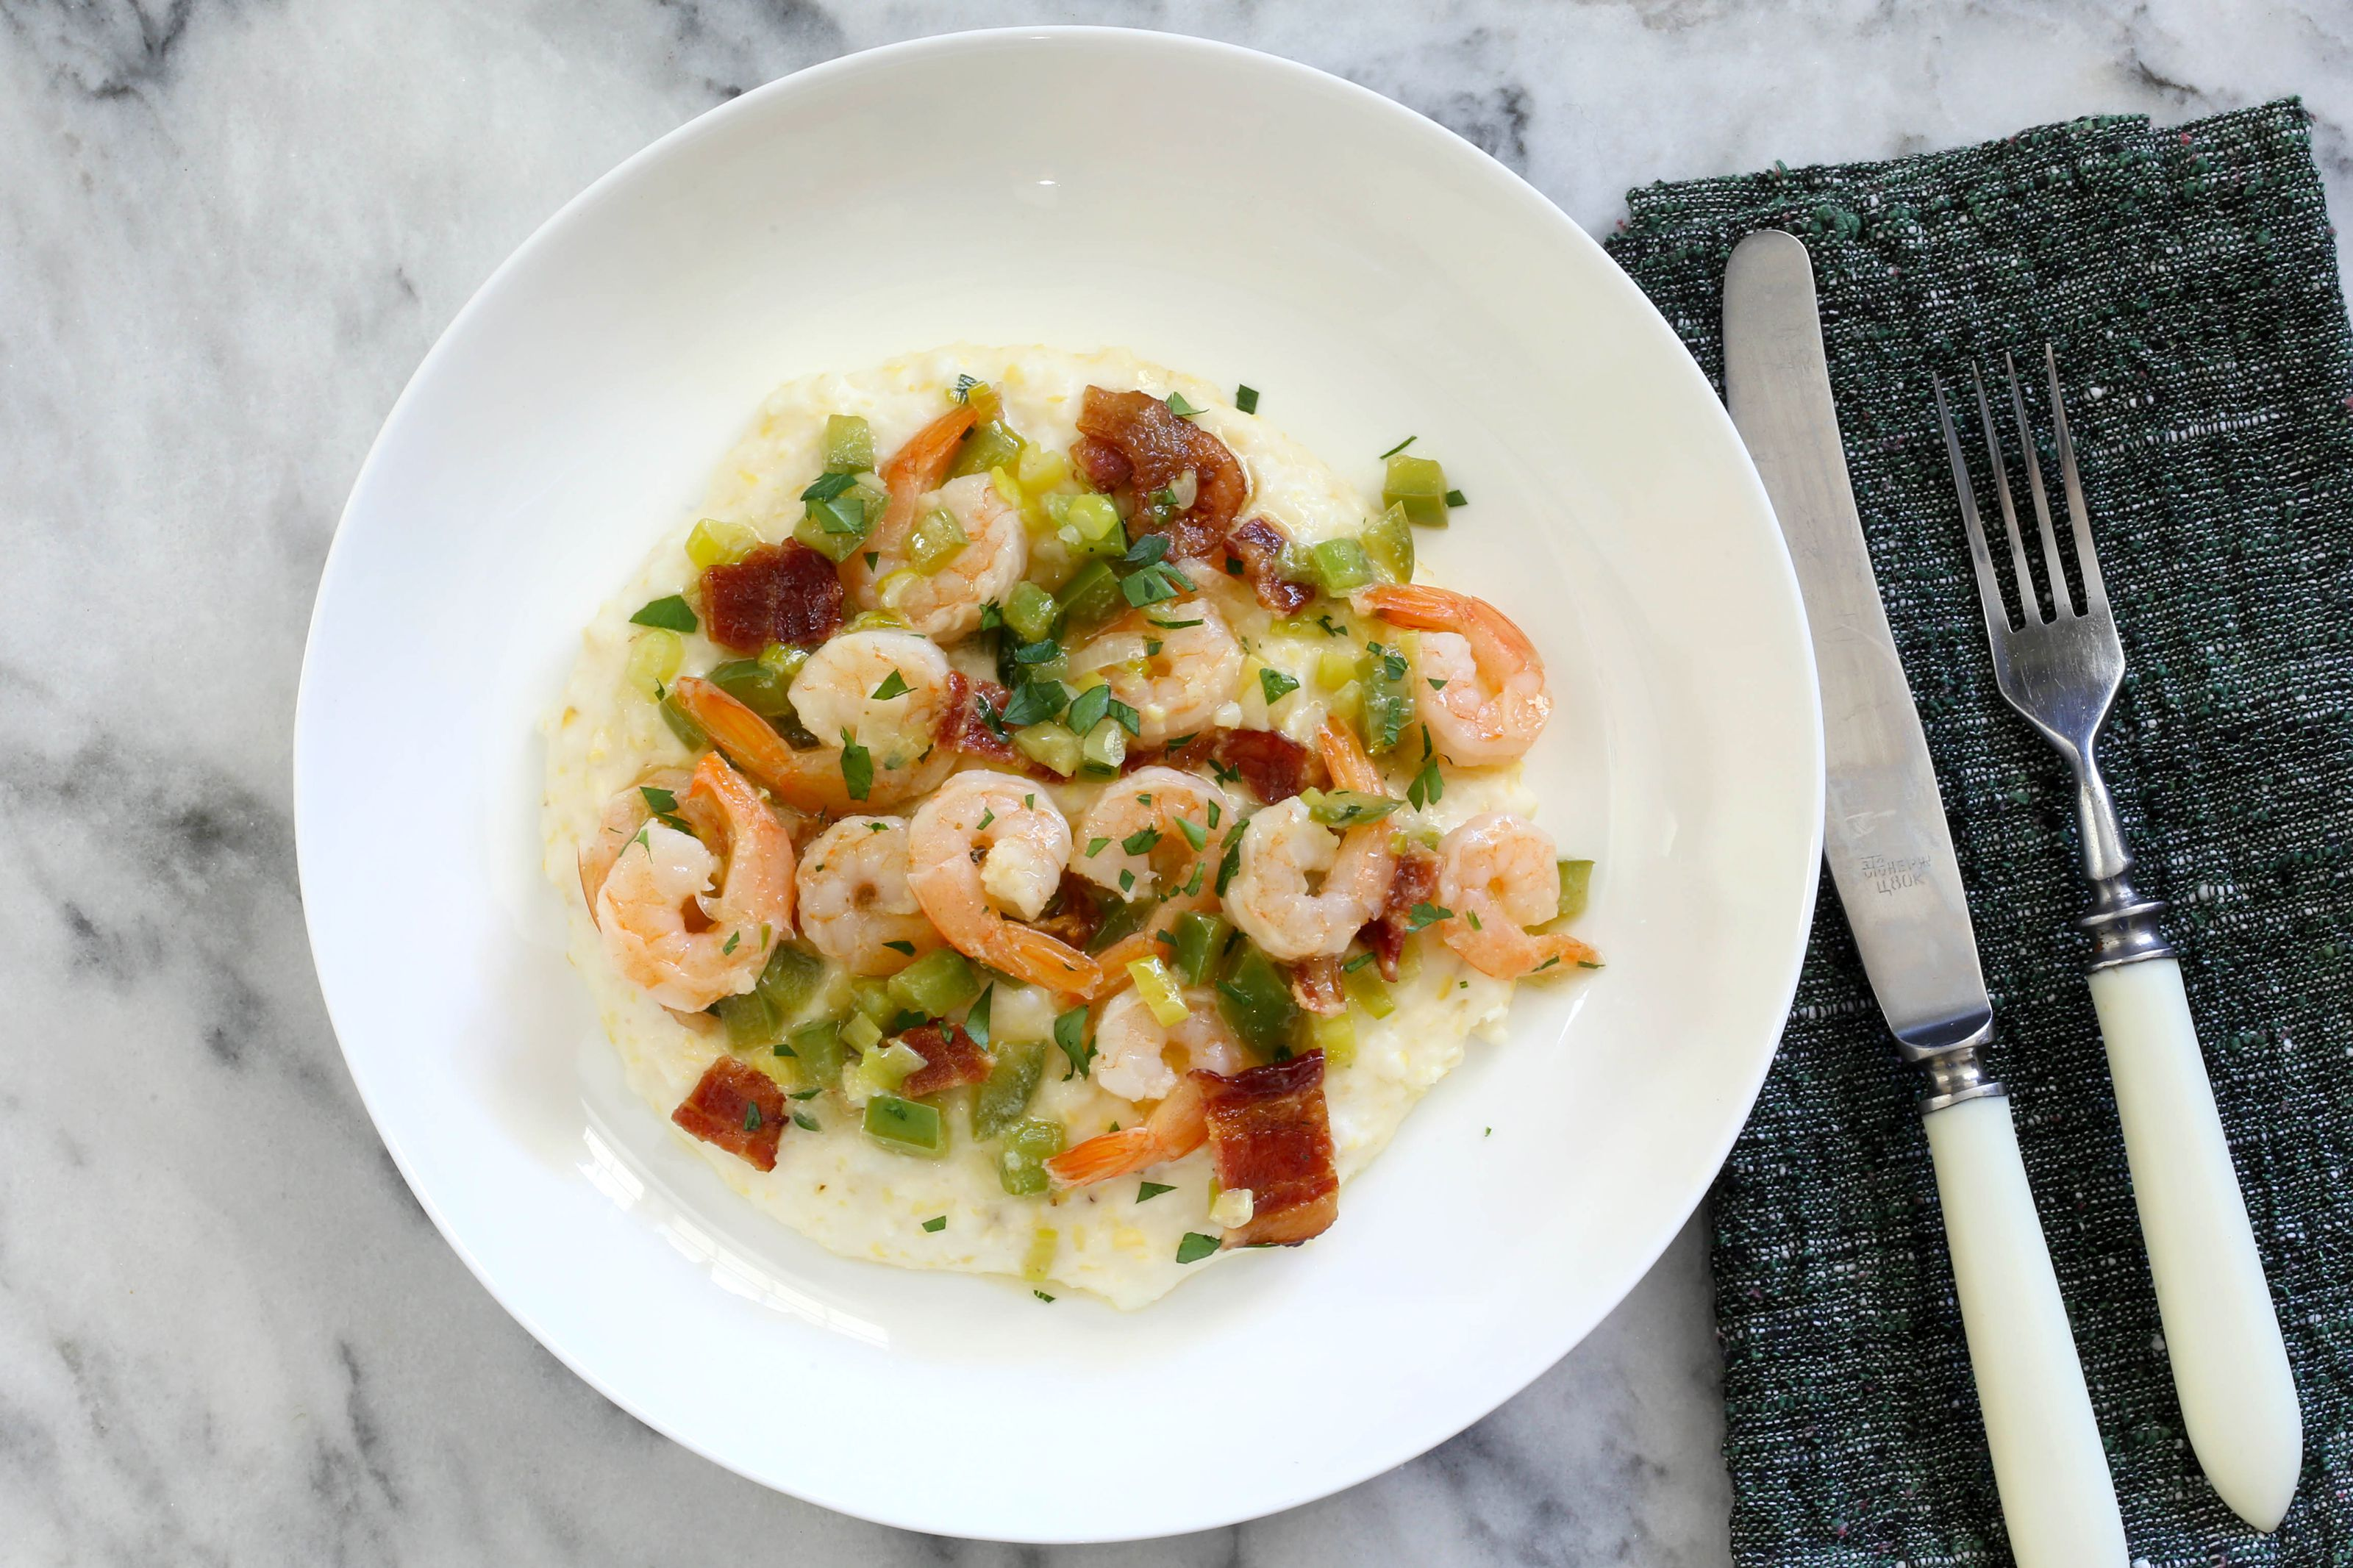 Instant Pot grits with shrimp and bacon.